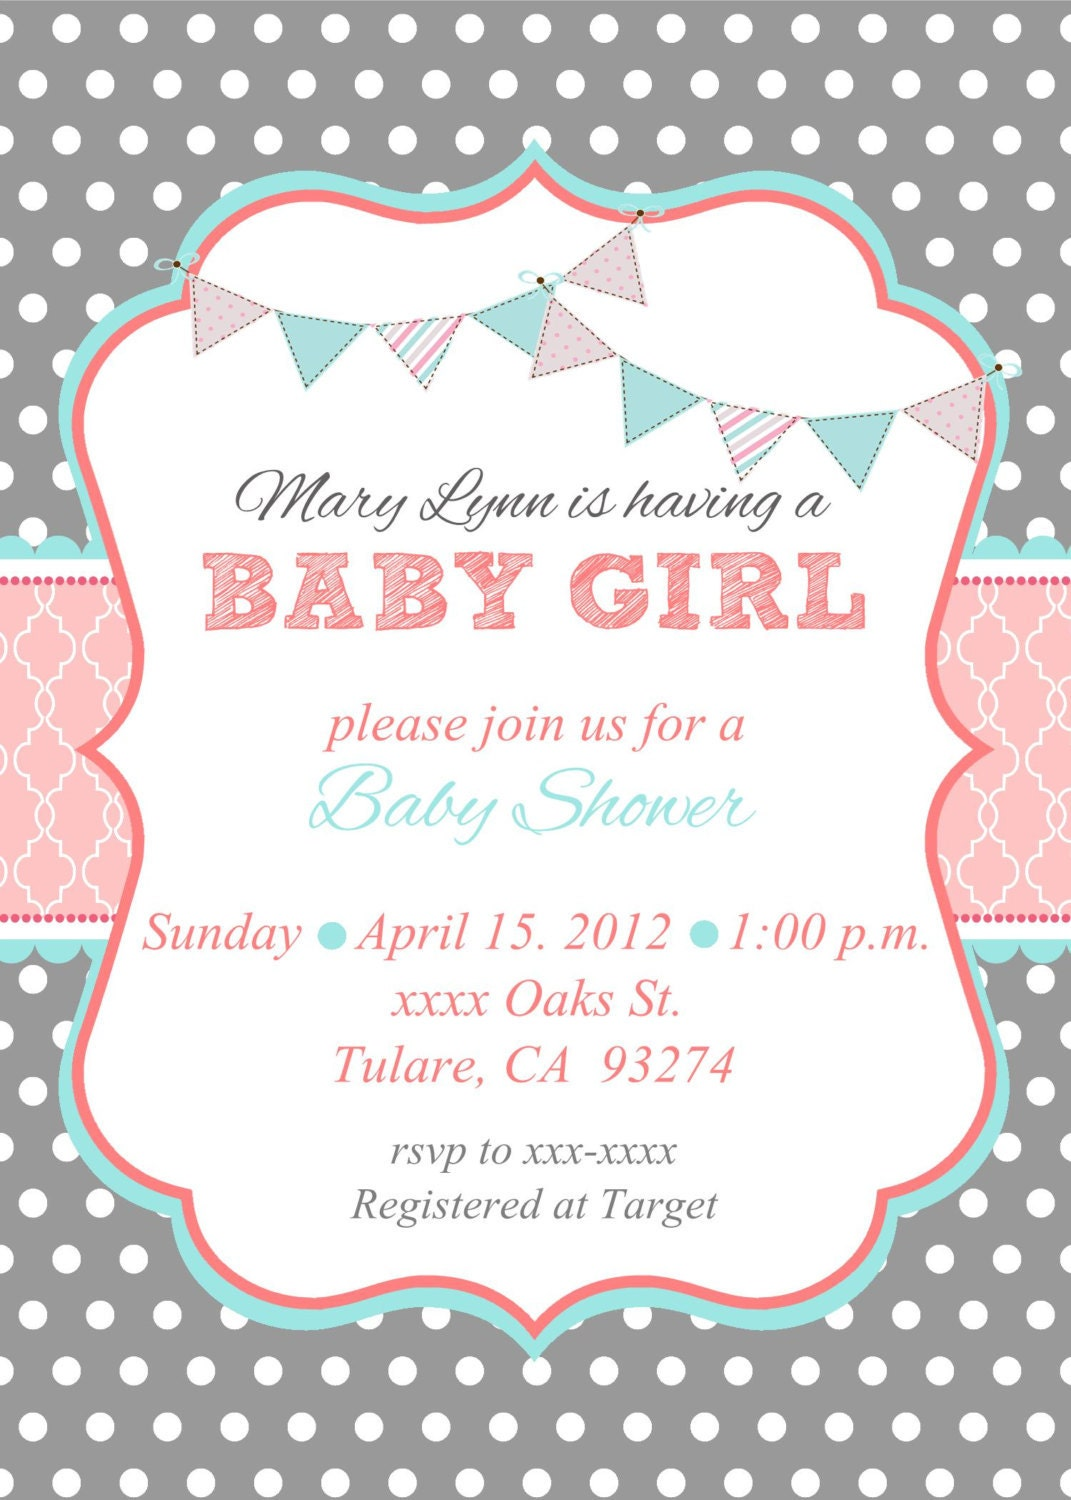 Baby Shower Invitations Etsy absolutely amazing ideas for your invitation example